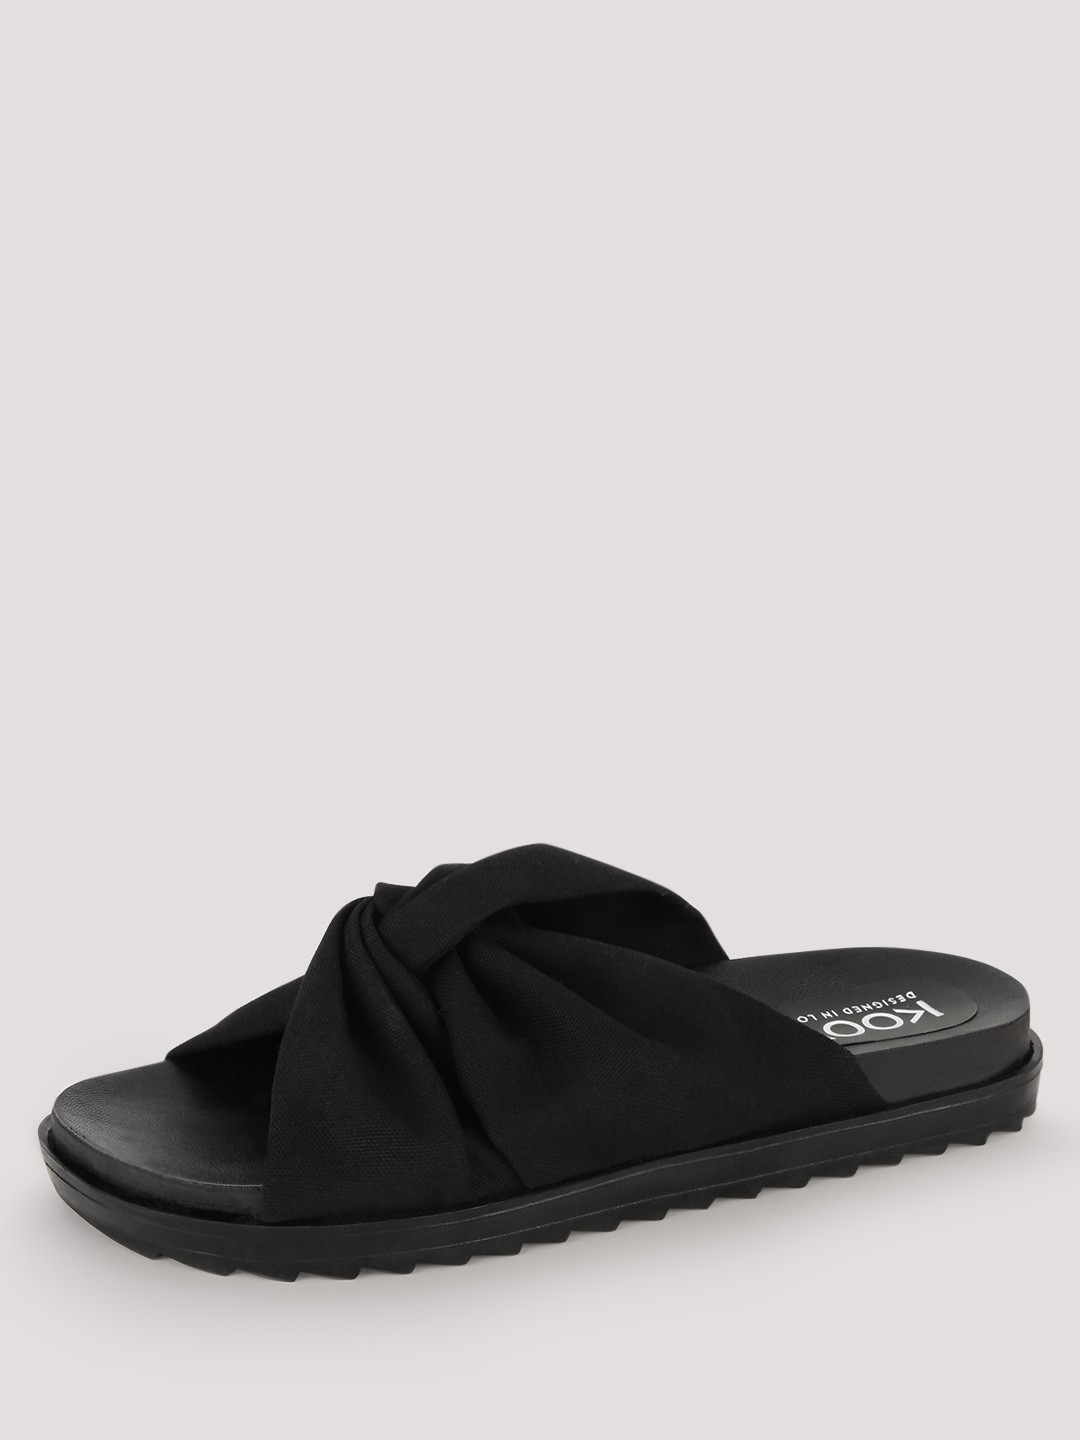 KOOVS Black Rouched Knot Sliders 1